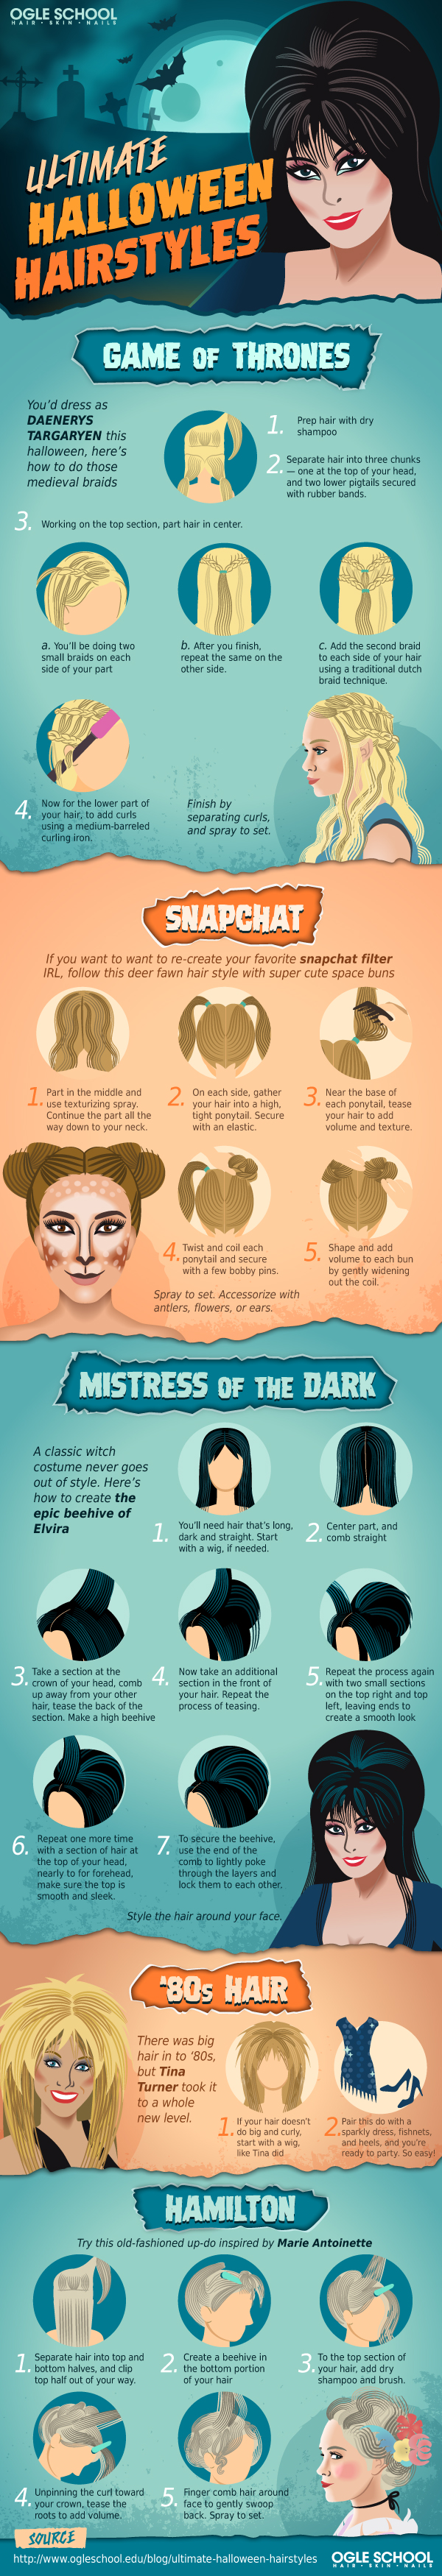 Ultimate Halloween Hairstyles #infographic #Hairstyles #infographics #Halloween #Halloween Hairstyles